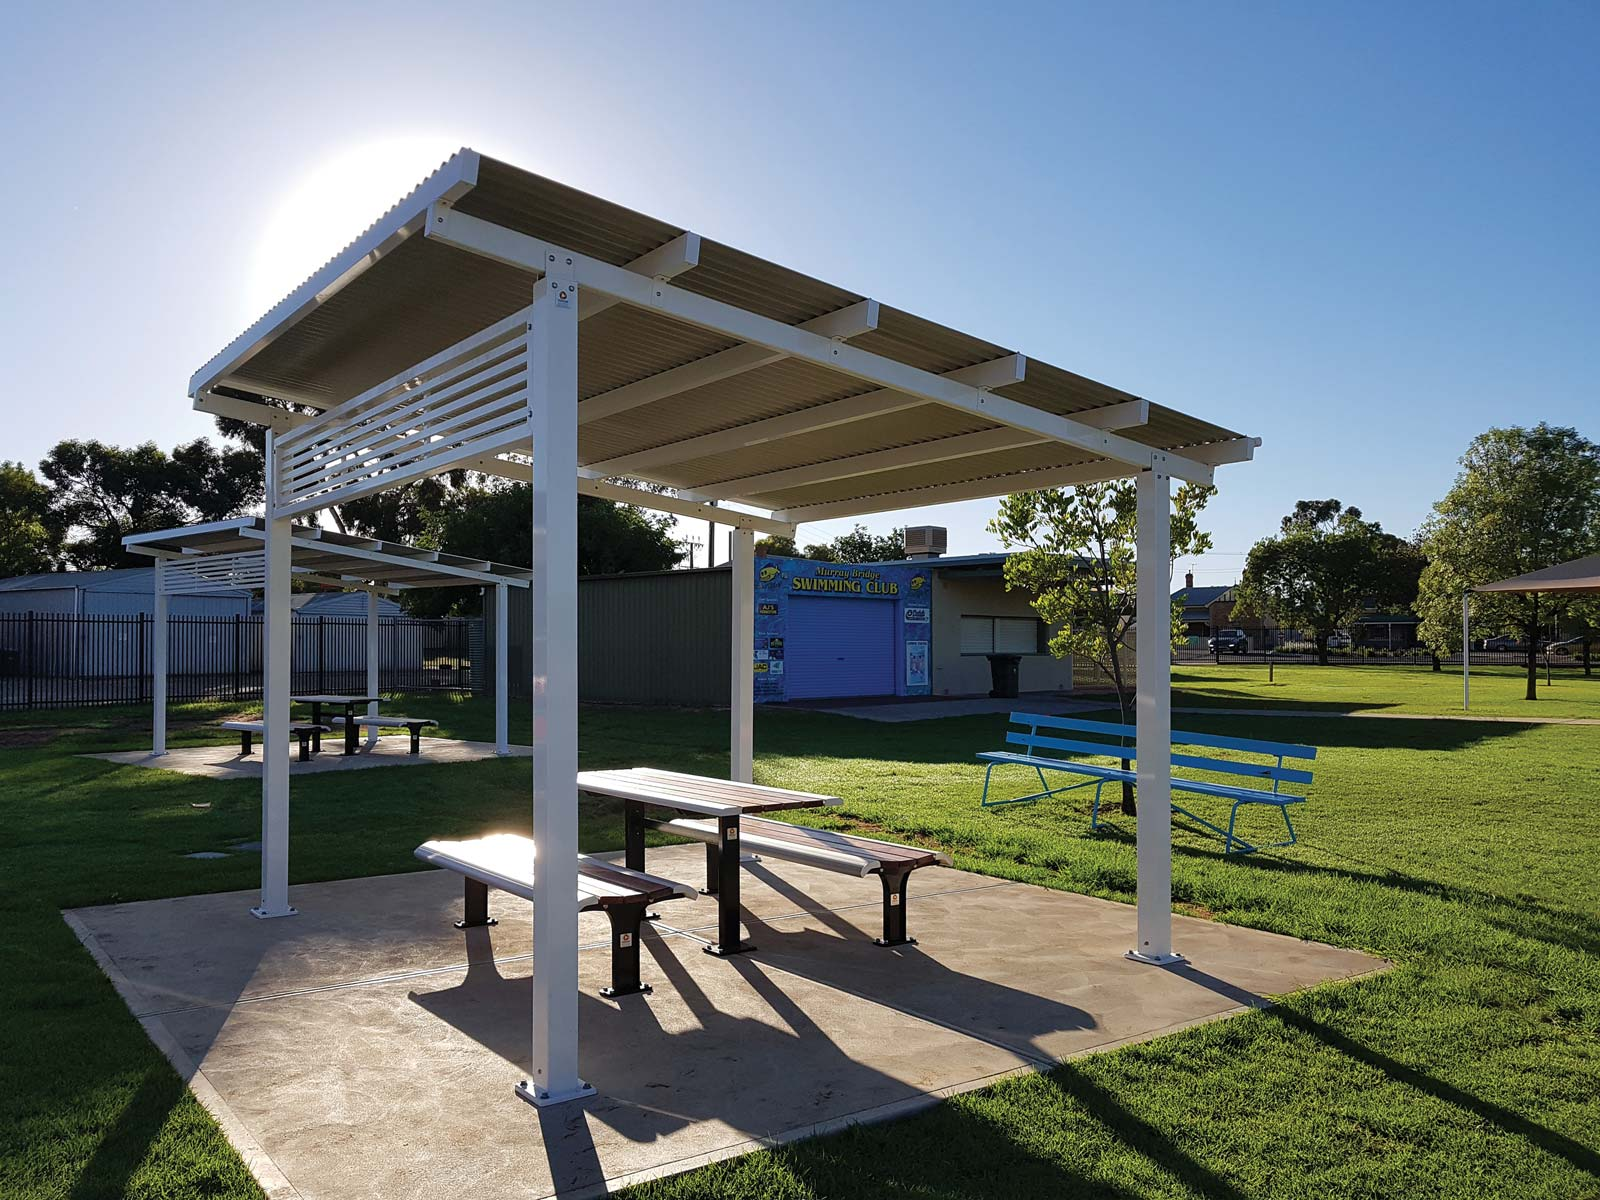 Murray Bridge swimming pool receives a makeover - Terrain Group